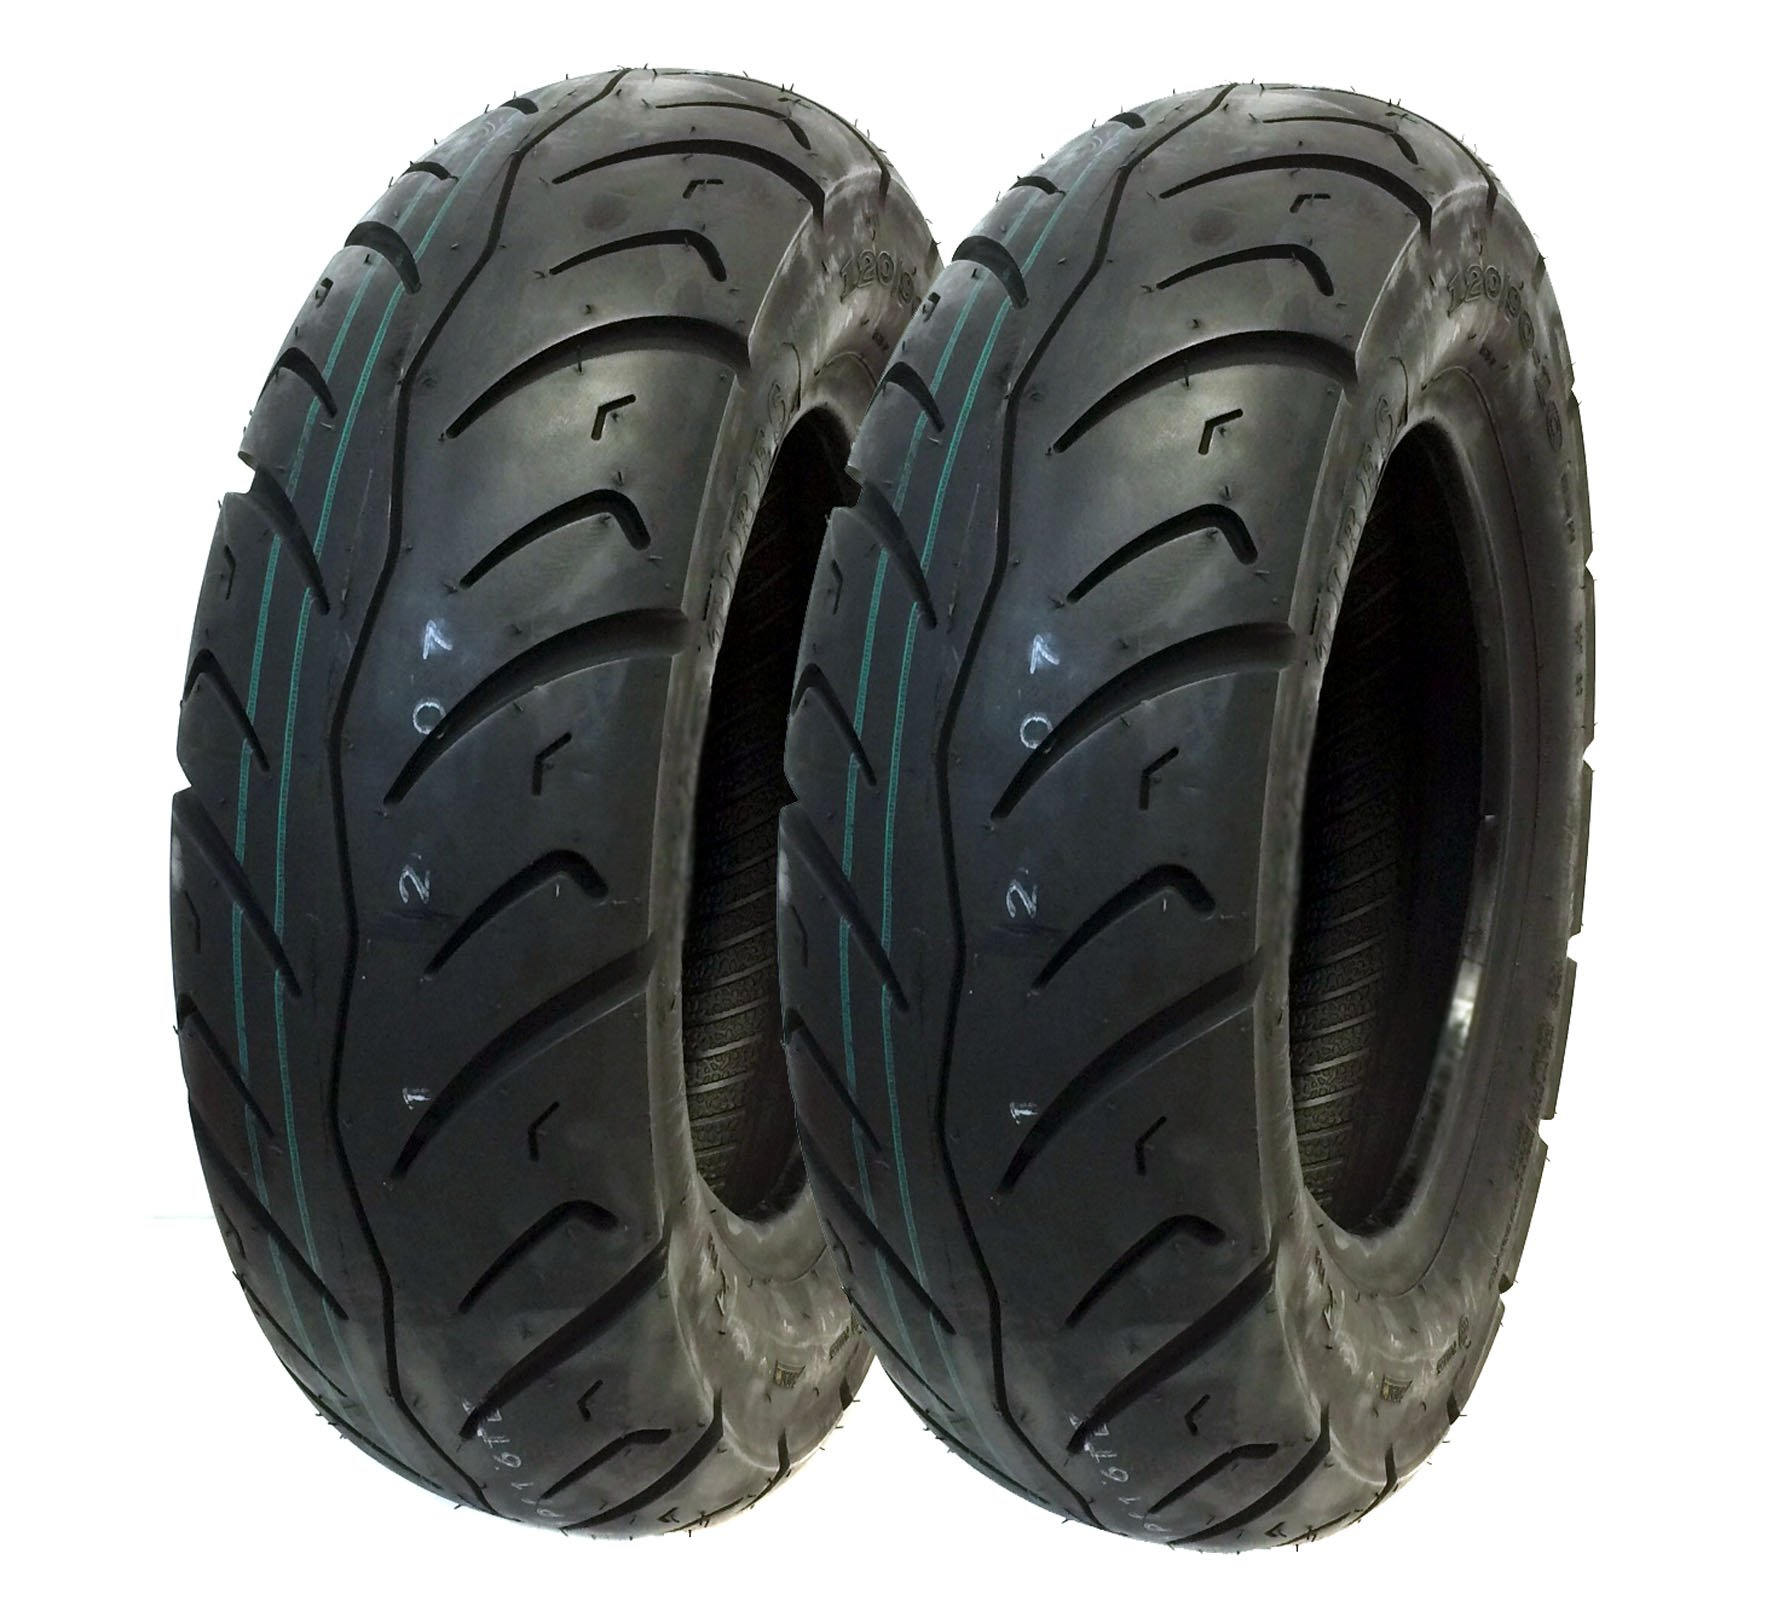 MMG Tire Set Front 120/90-10 Rear 130/90-10 Scooter Tire Tread Pattern Designed for Street Performance (P116) by MMG